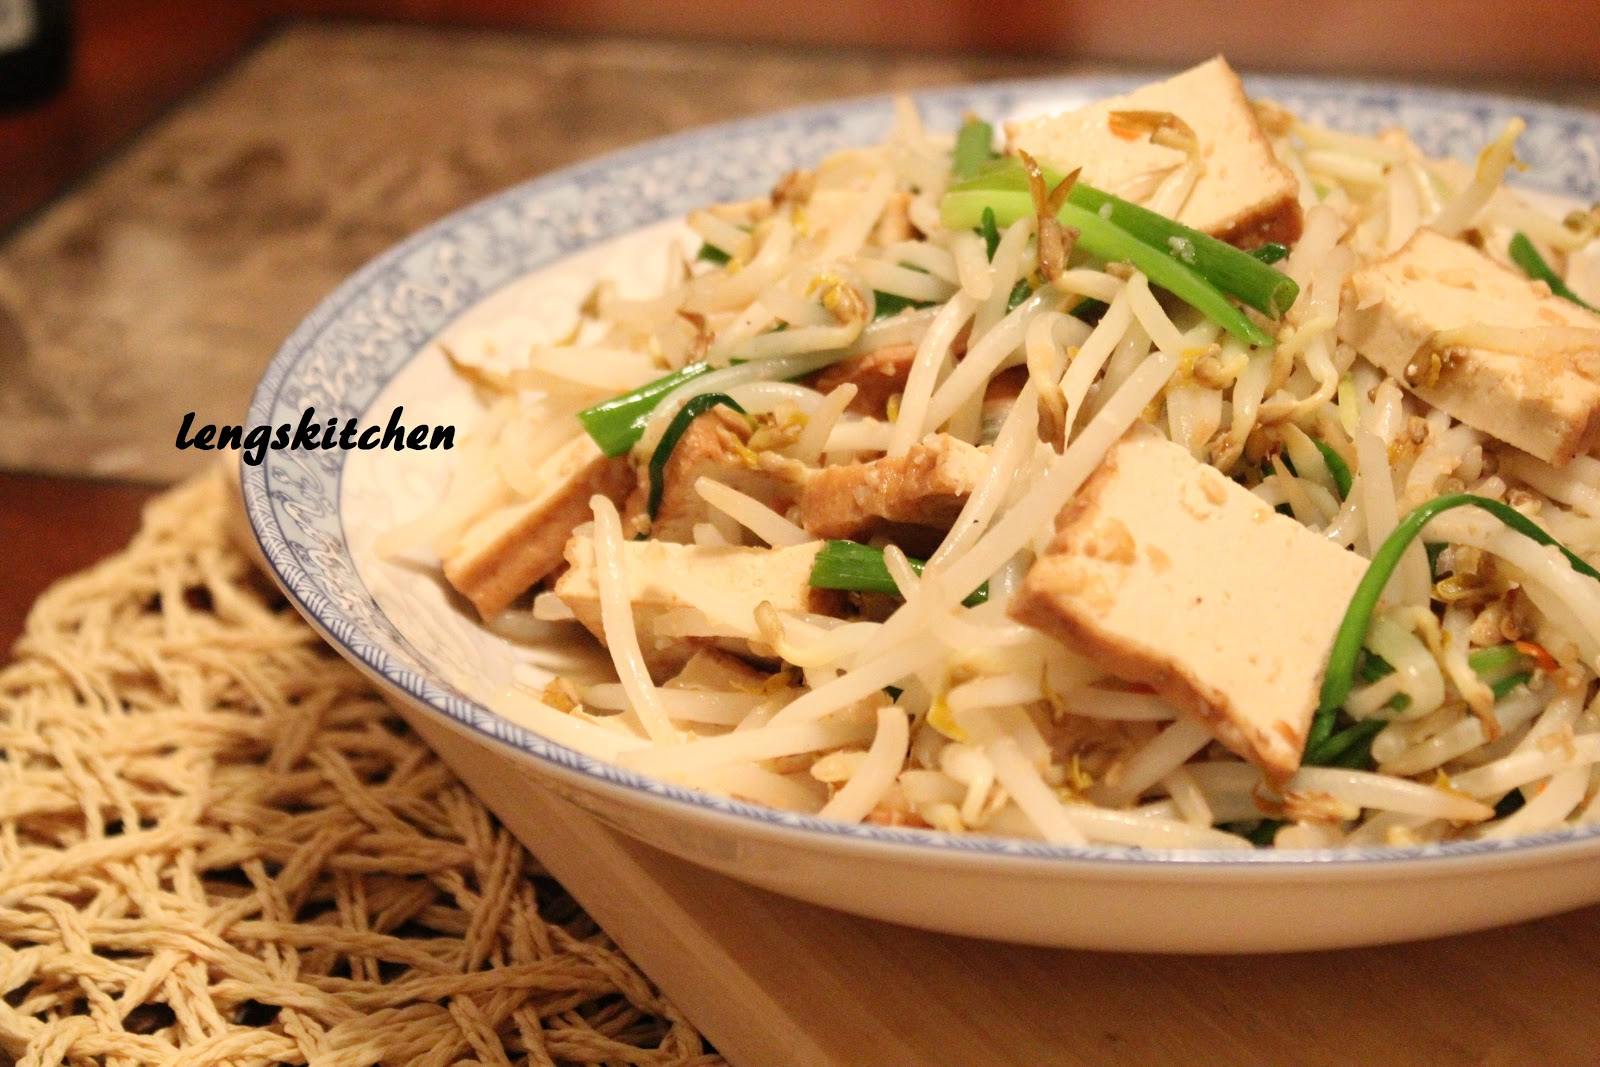 Stir Fried Noodles With Bean Sprouts Stir Fried Bean Sprouts With